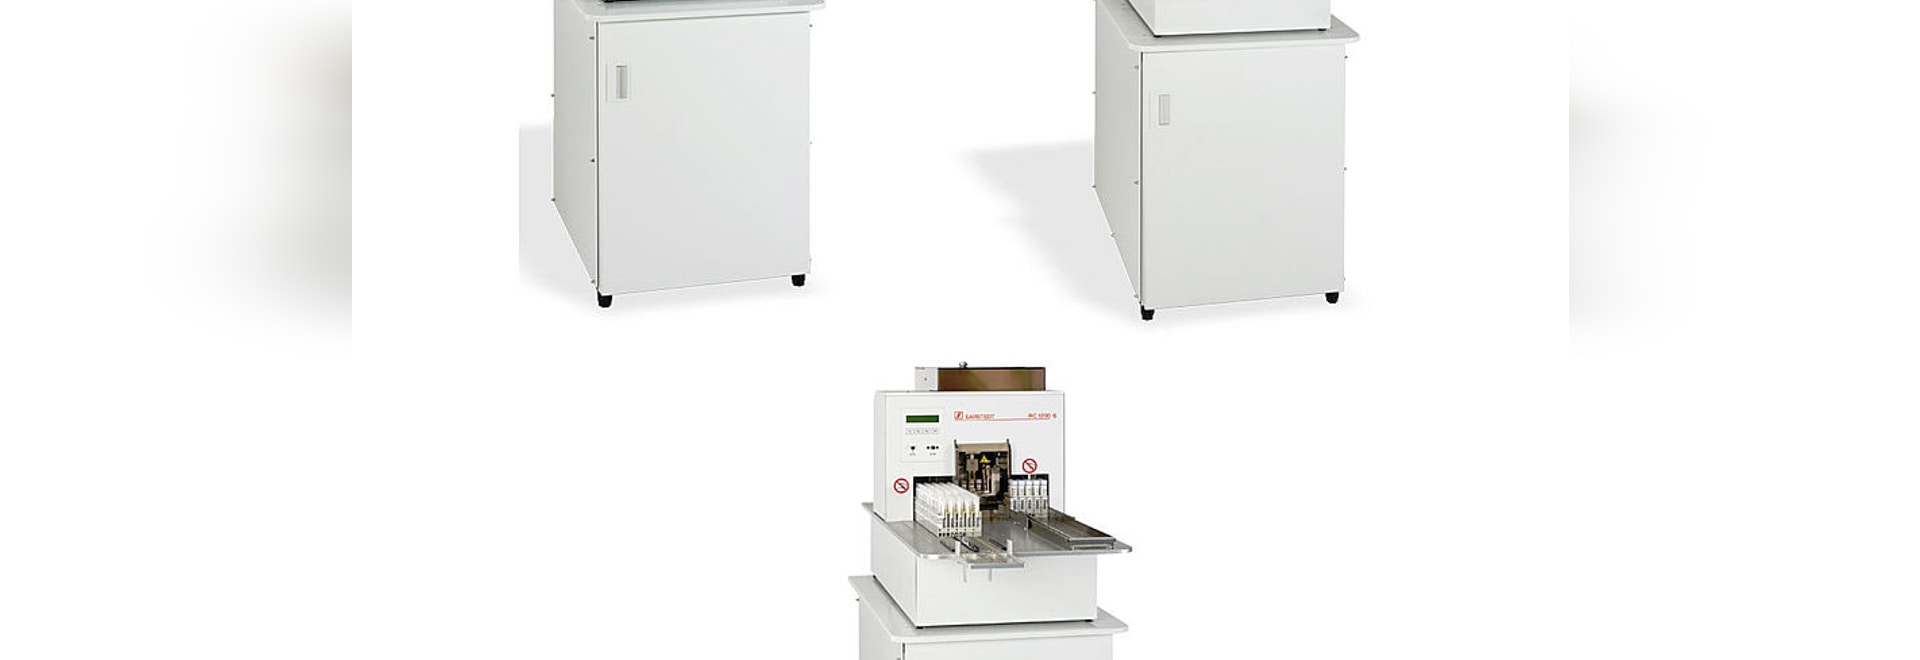 Stand-alone solutions for decapping & recapping